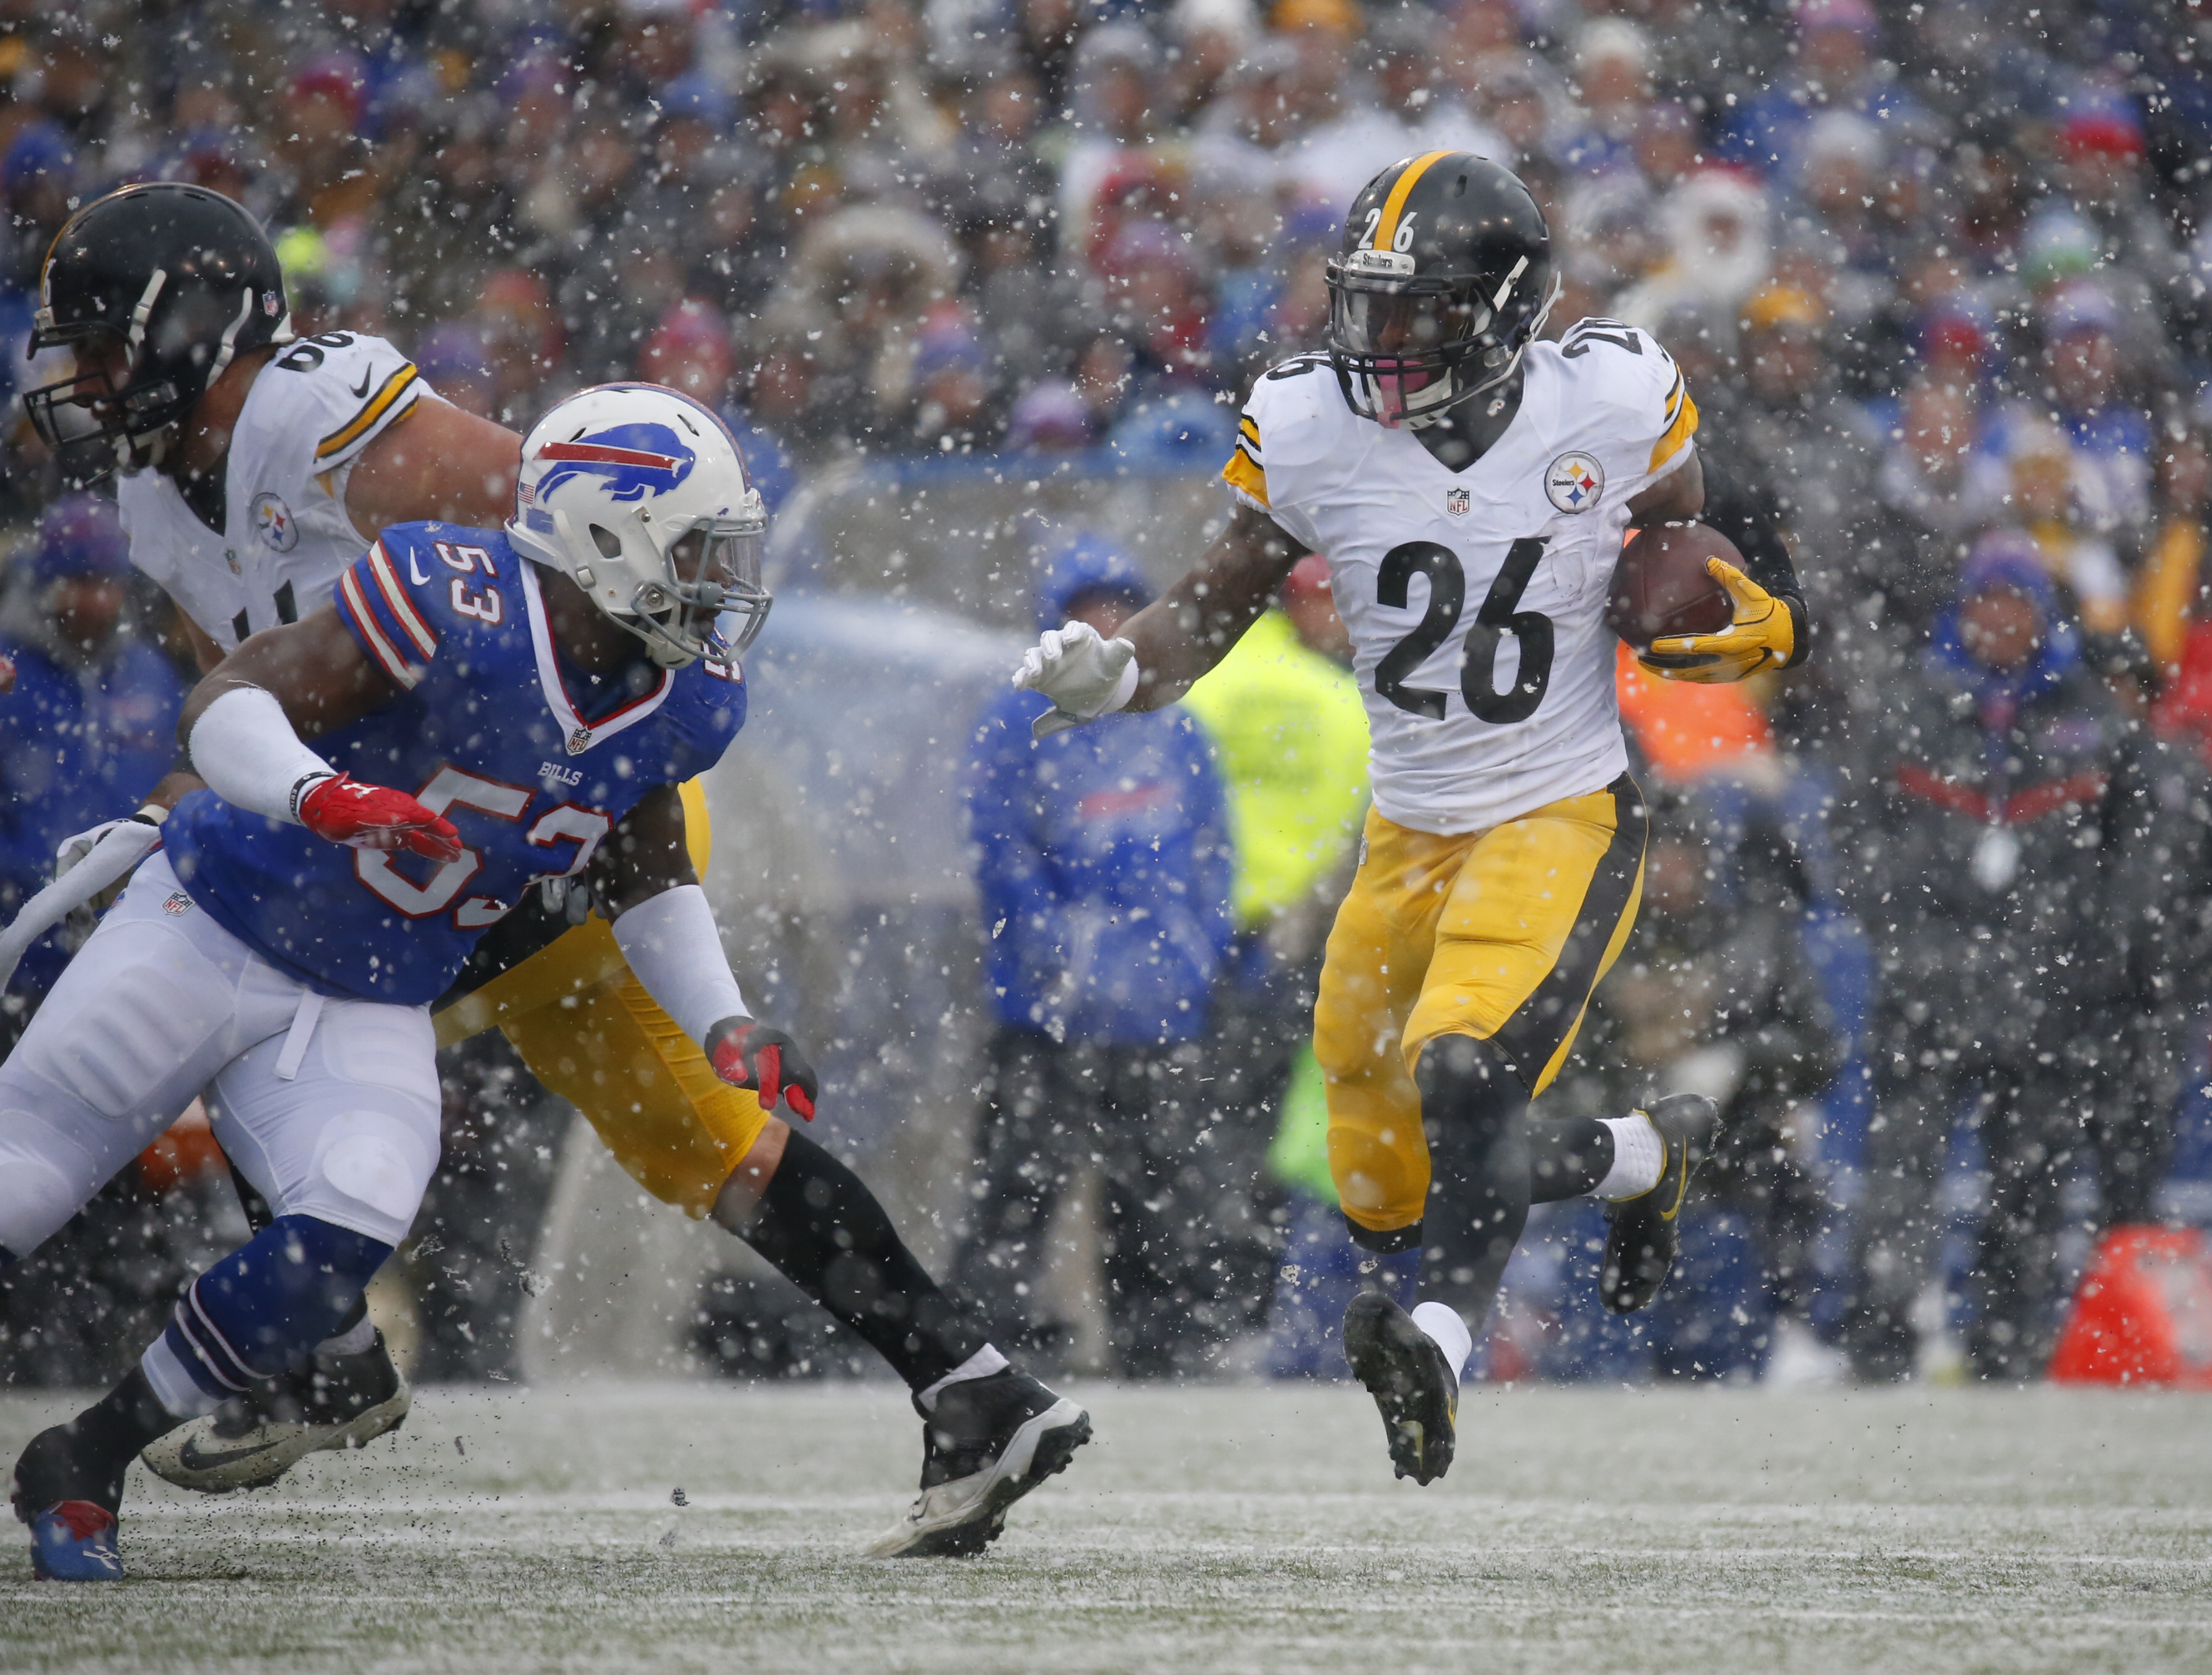 Pittsburgh Steelers Le'Veon Bell runs against the Buffalo Bills during the first quarter. (Harry Scull Jr./Buffalo News)